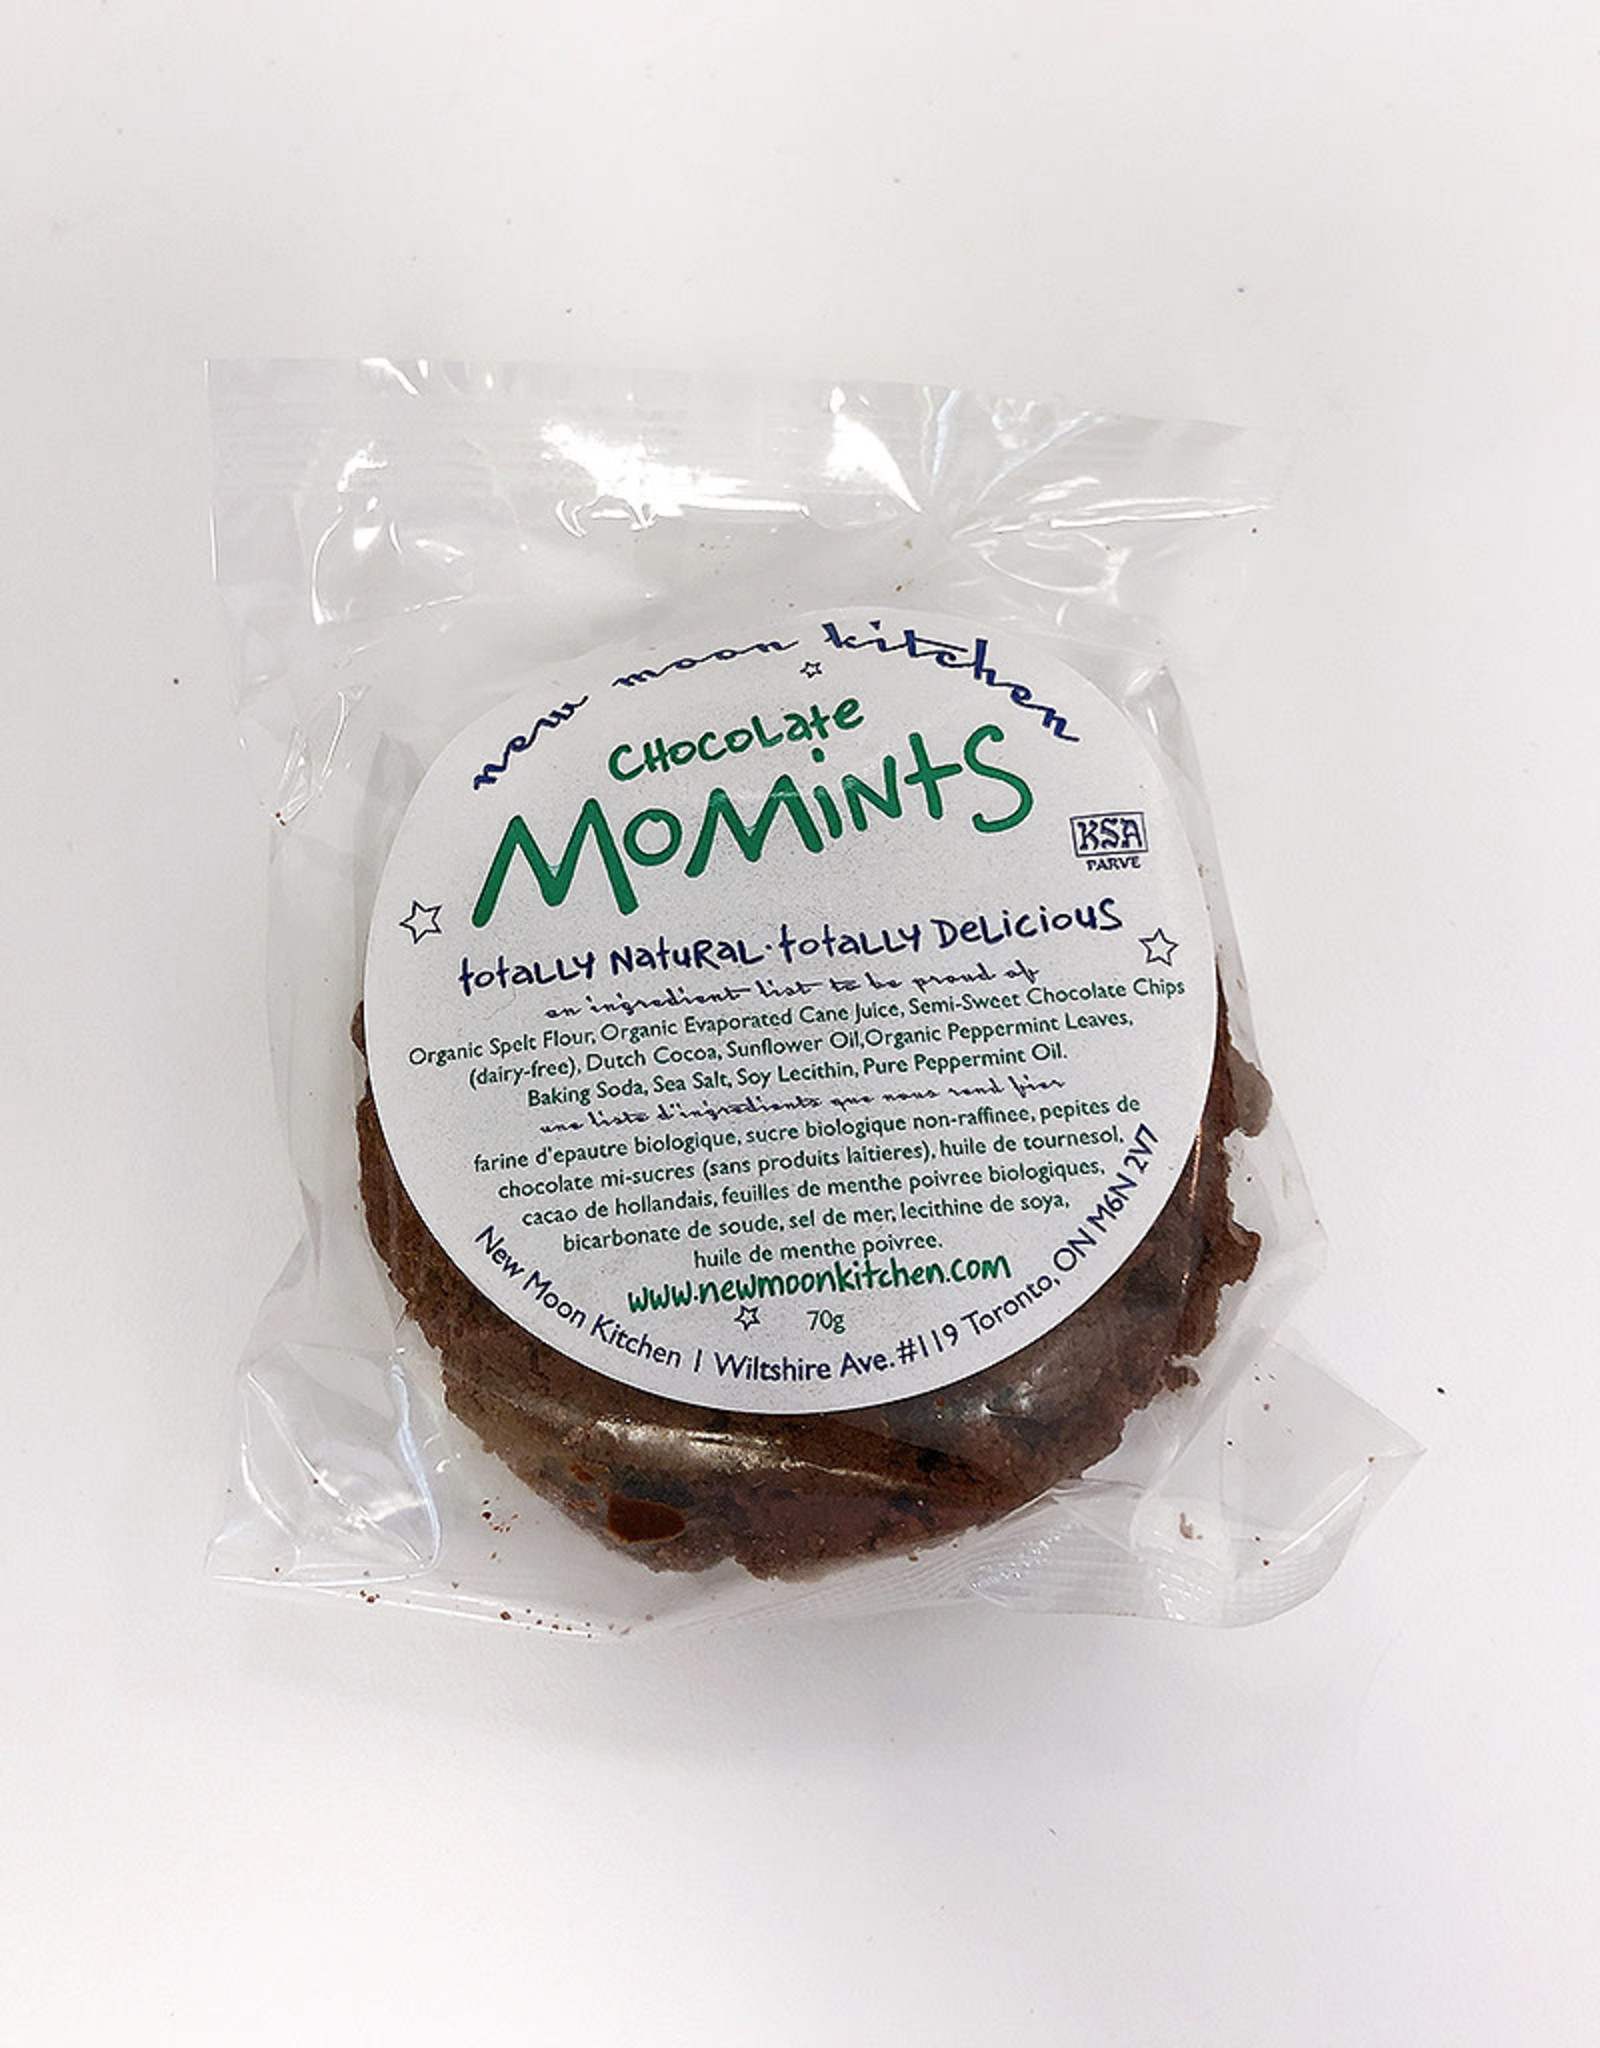 New Moon Kitchen New Moon Kitchen - Cookies, Chocolate Mint Momints (2 pk)